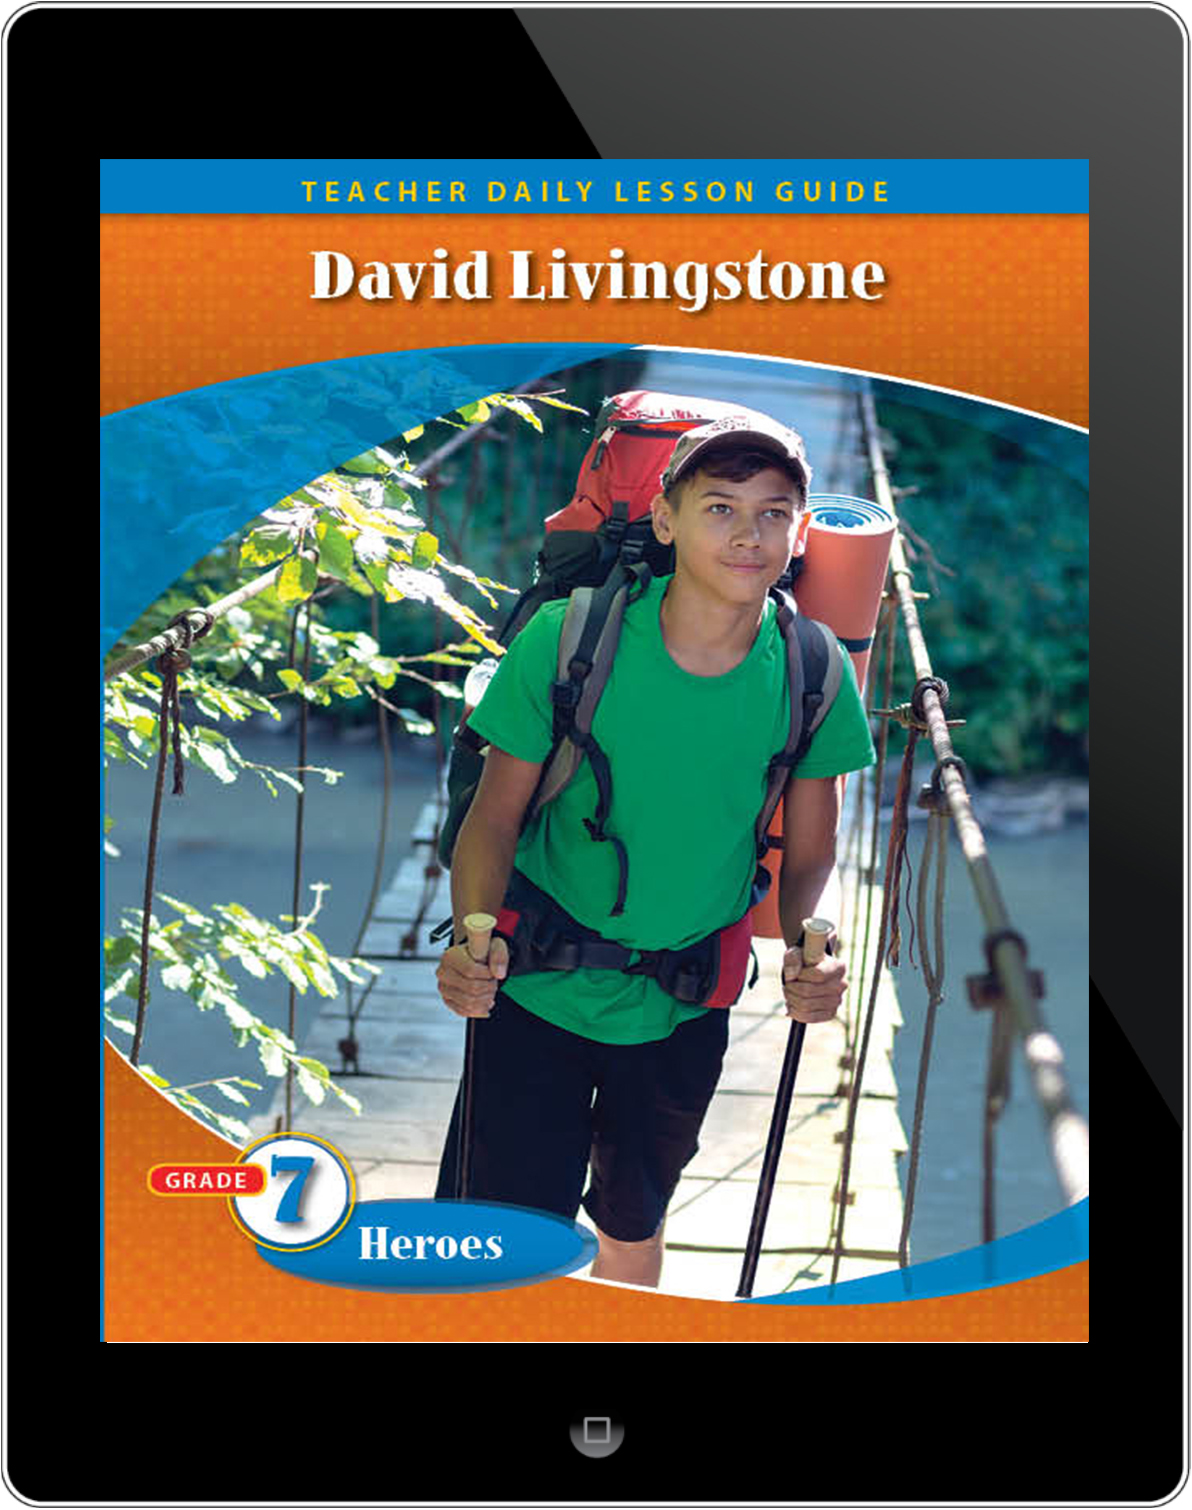 Pathways2.0 Grade 7 Heroes Unit: David Livingstone: Africa's Trailblazer Daily Lesson Guide 5 Year License